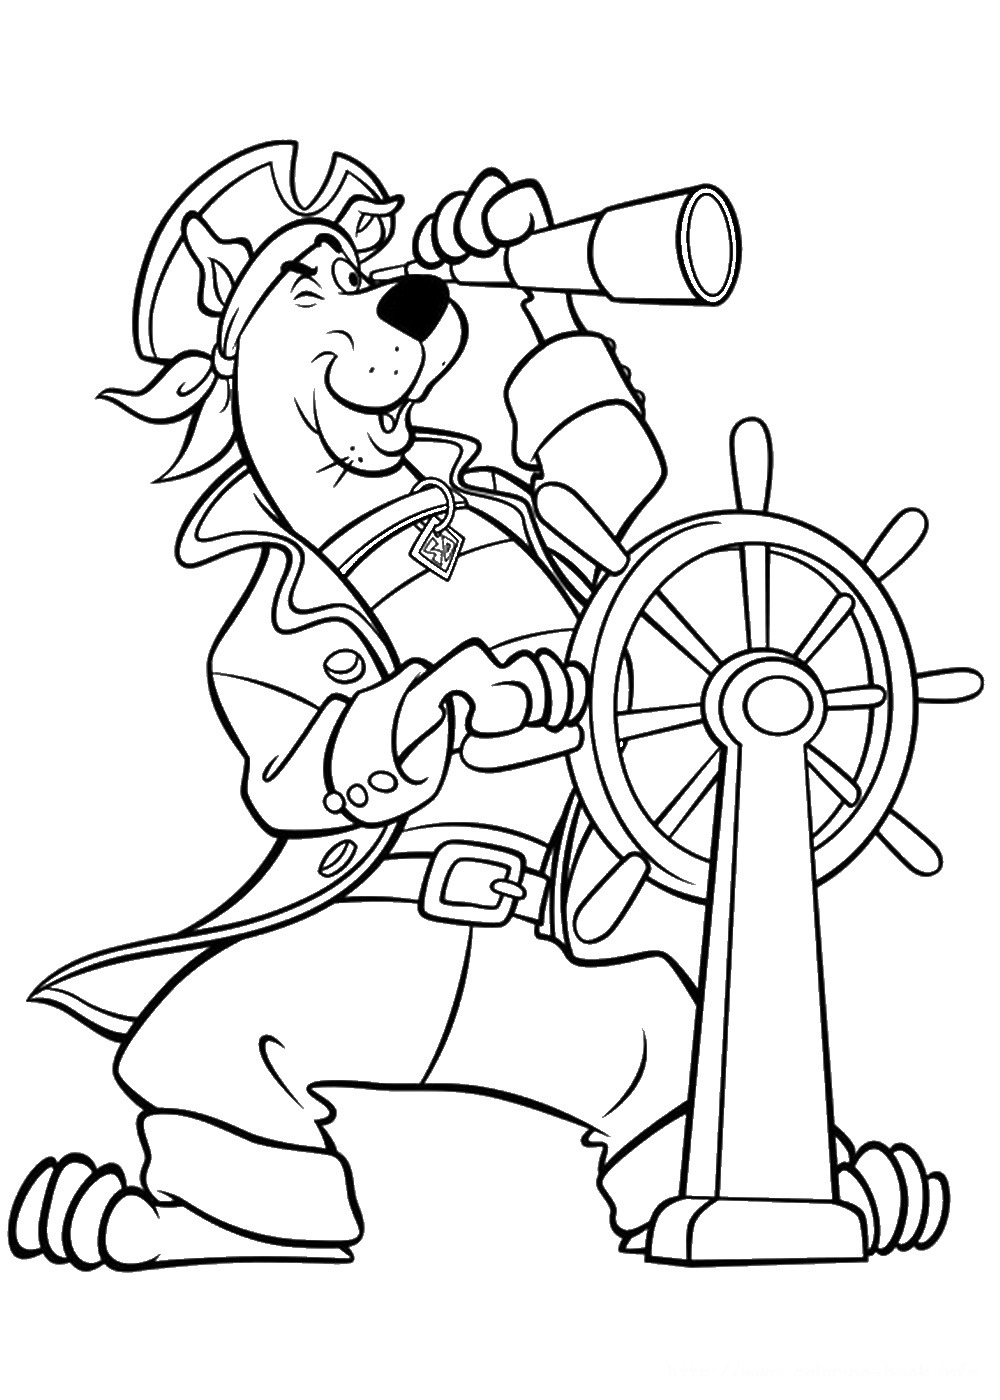 scoo by doo coloring pages - photo#16